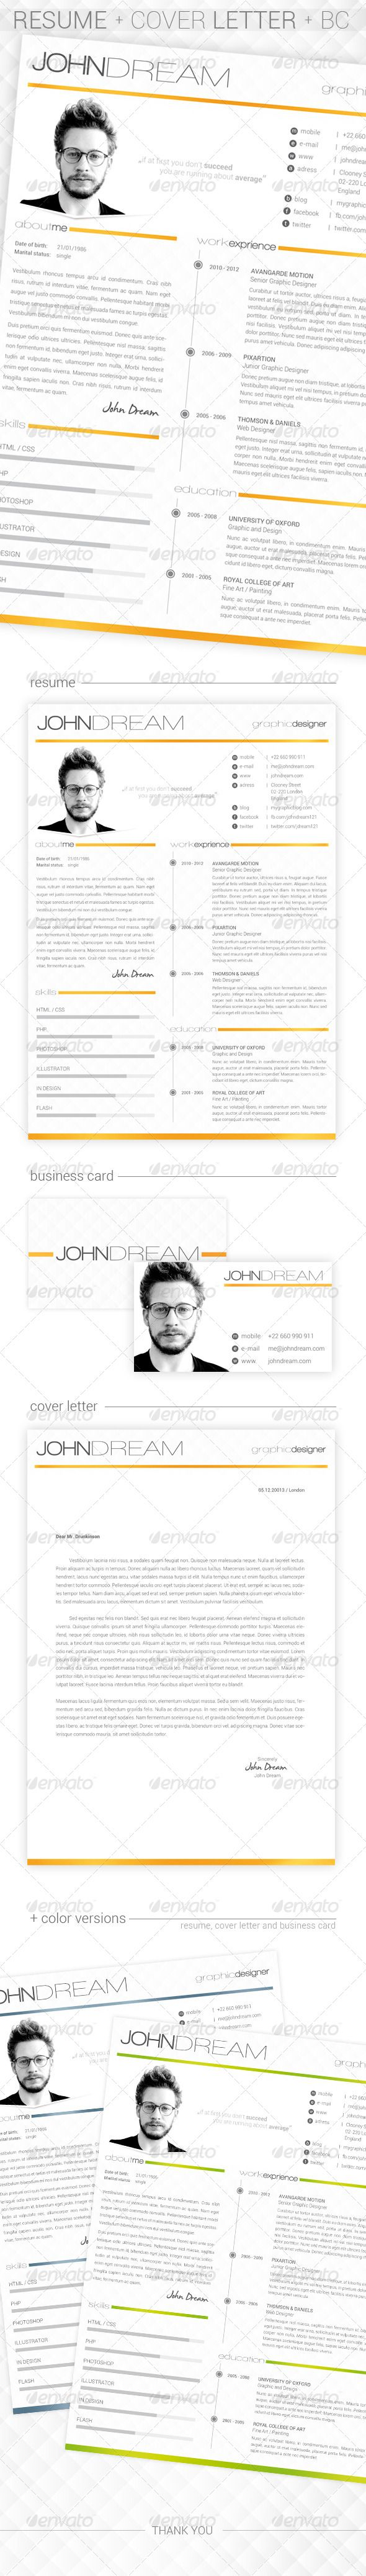 JDream - Resume + Cover Letter + BC #GraphicRiver JDream is a clean one page resume and cover letter print template suitable for graphic designers, photographers and creative people. BONUS: business card A4 Size (210×297mm) + 3mm bleed US Letter Size + 0.25 bleed 300 DPI CMYK – Print Ready 3 Color Version Free Fonts Used Completely Editable Fonts: Roboto Walkway James Fajardo Person Image is not include Other resumes Created: 11 December 13 Graphics Files Included: Photoshop PSD Layered: Yes…